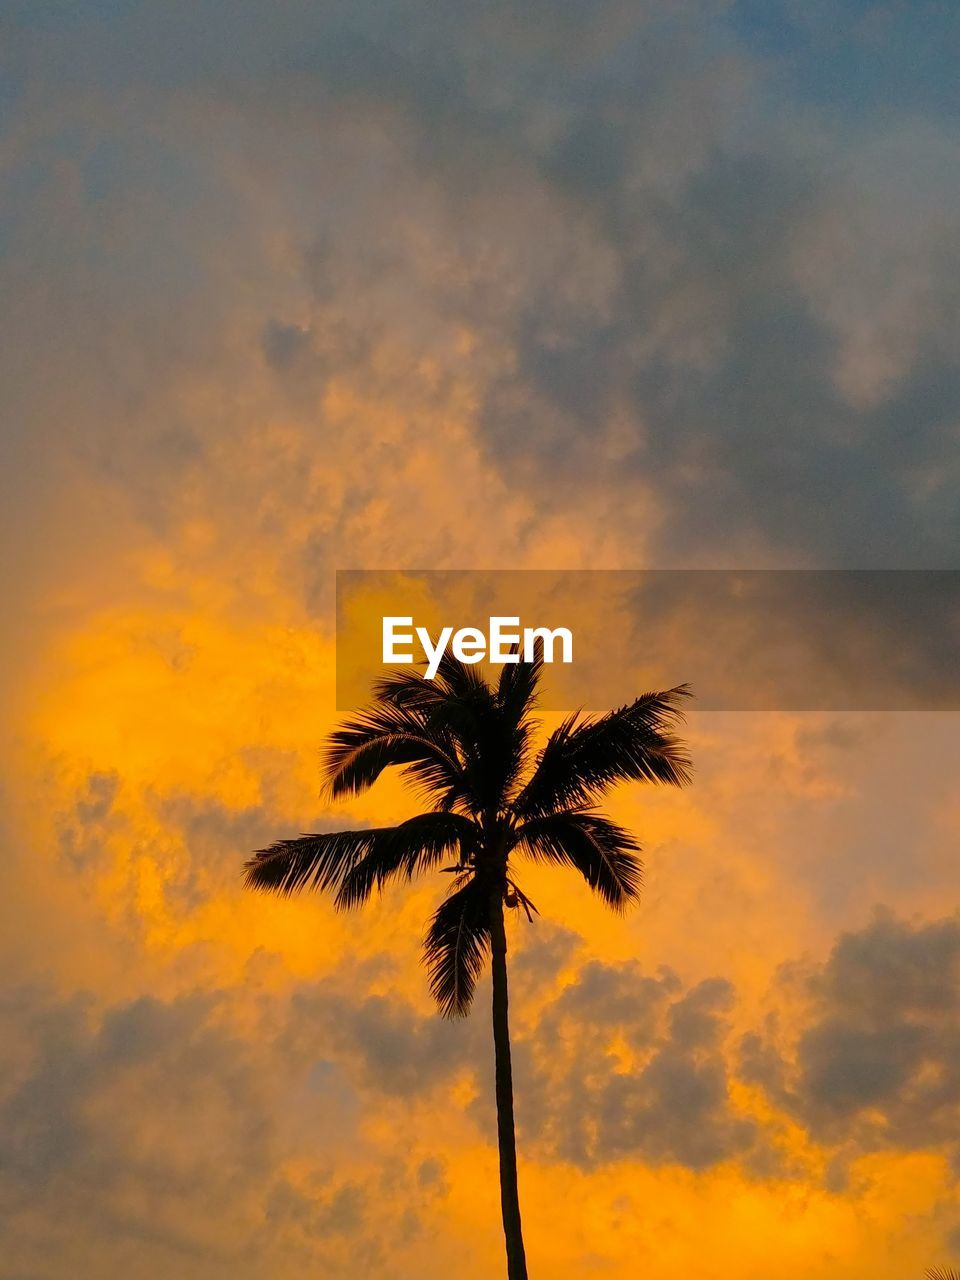 sky, palm tree, sunset, tropical climate, cloud - sky, silhouette, low angle view, beauty in nature, tree, plant, nature, scenics - nature, tranquility, no people, orange color, tranquil scene, growth, tree trunk, coconut palm tree, trunk, outdoors, tropical tree, romantic sky, palm leaf